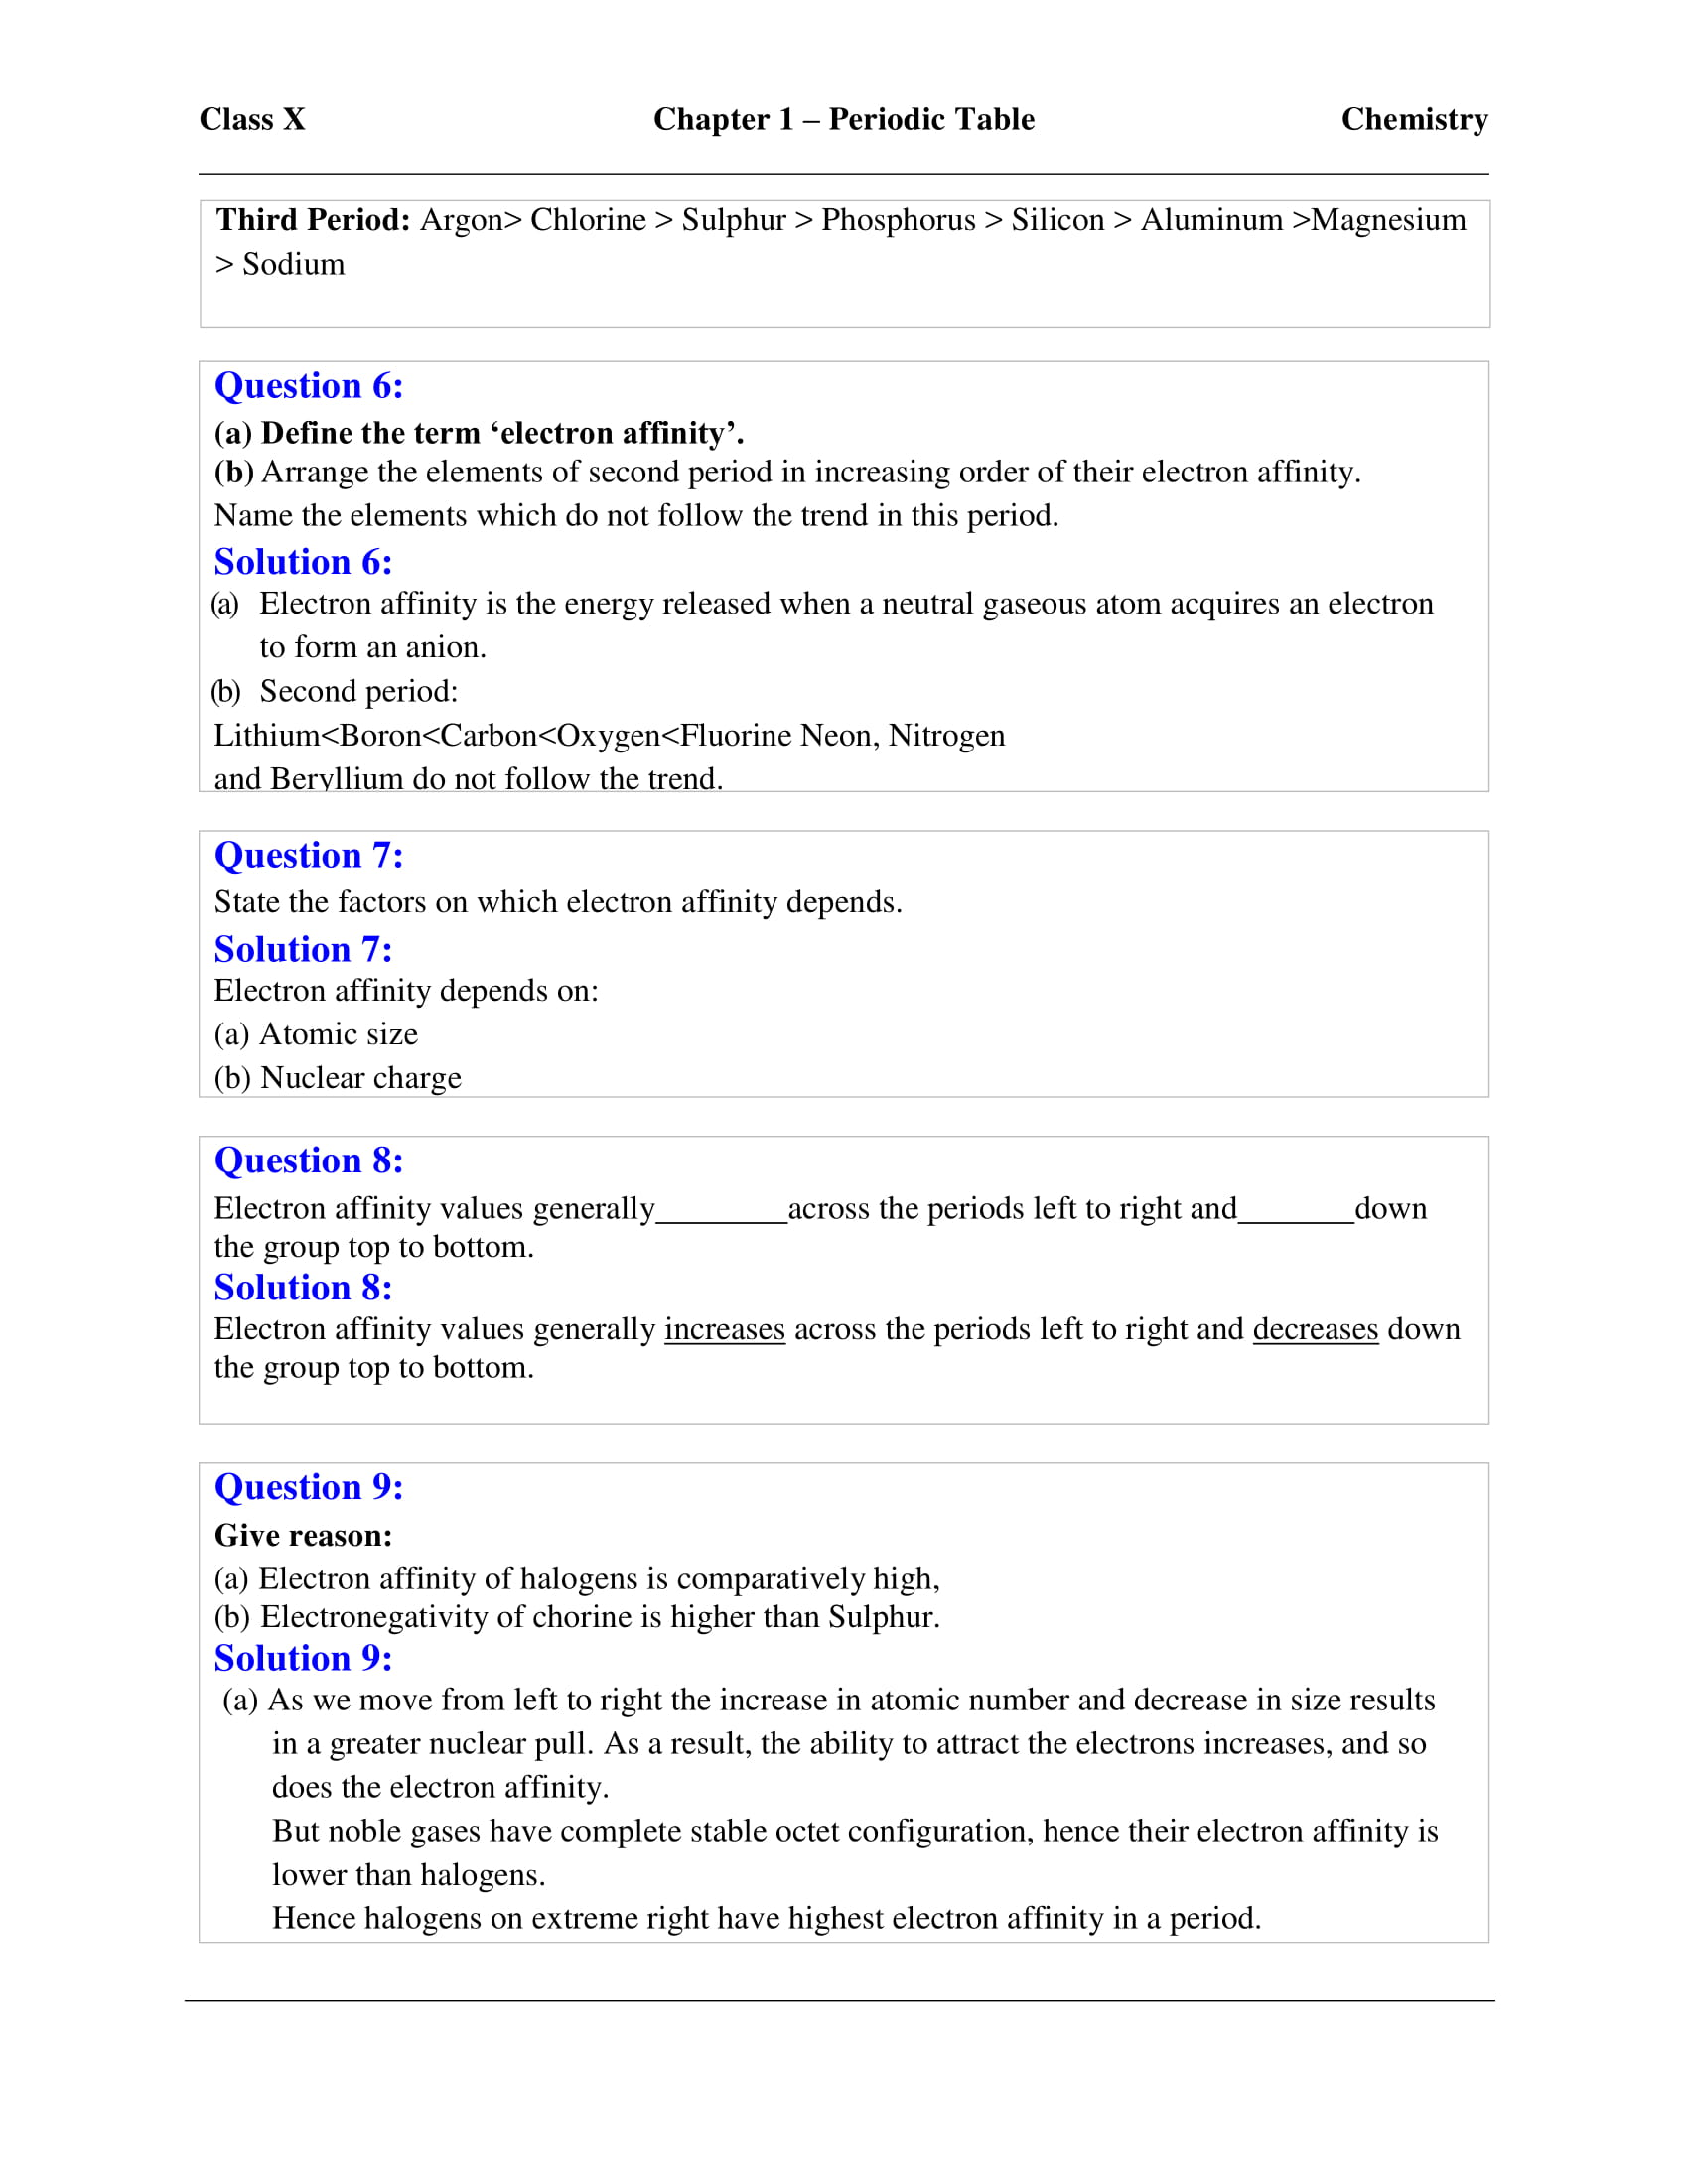 ICSE Solutions For Class 10 Chemistry Chapter 1 - Download